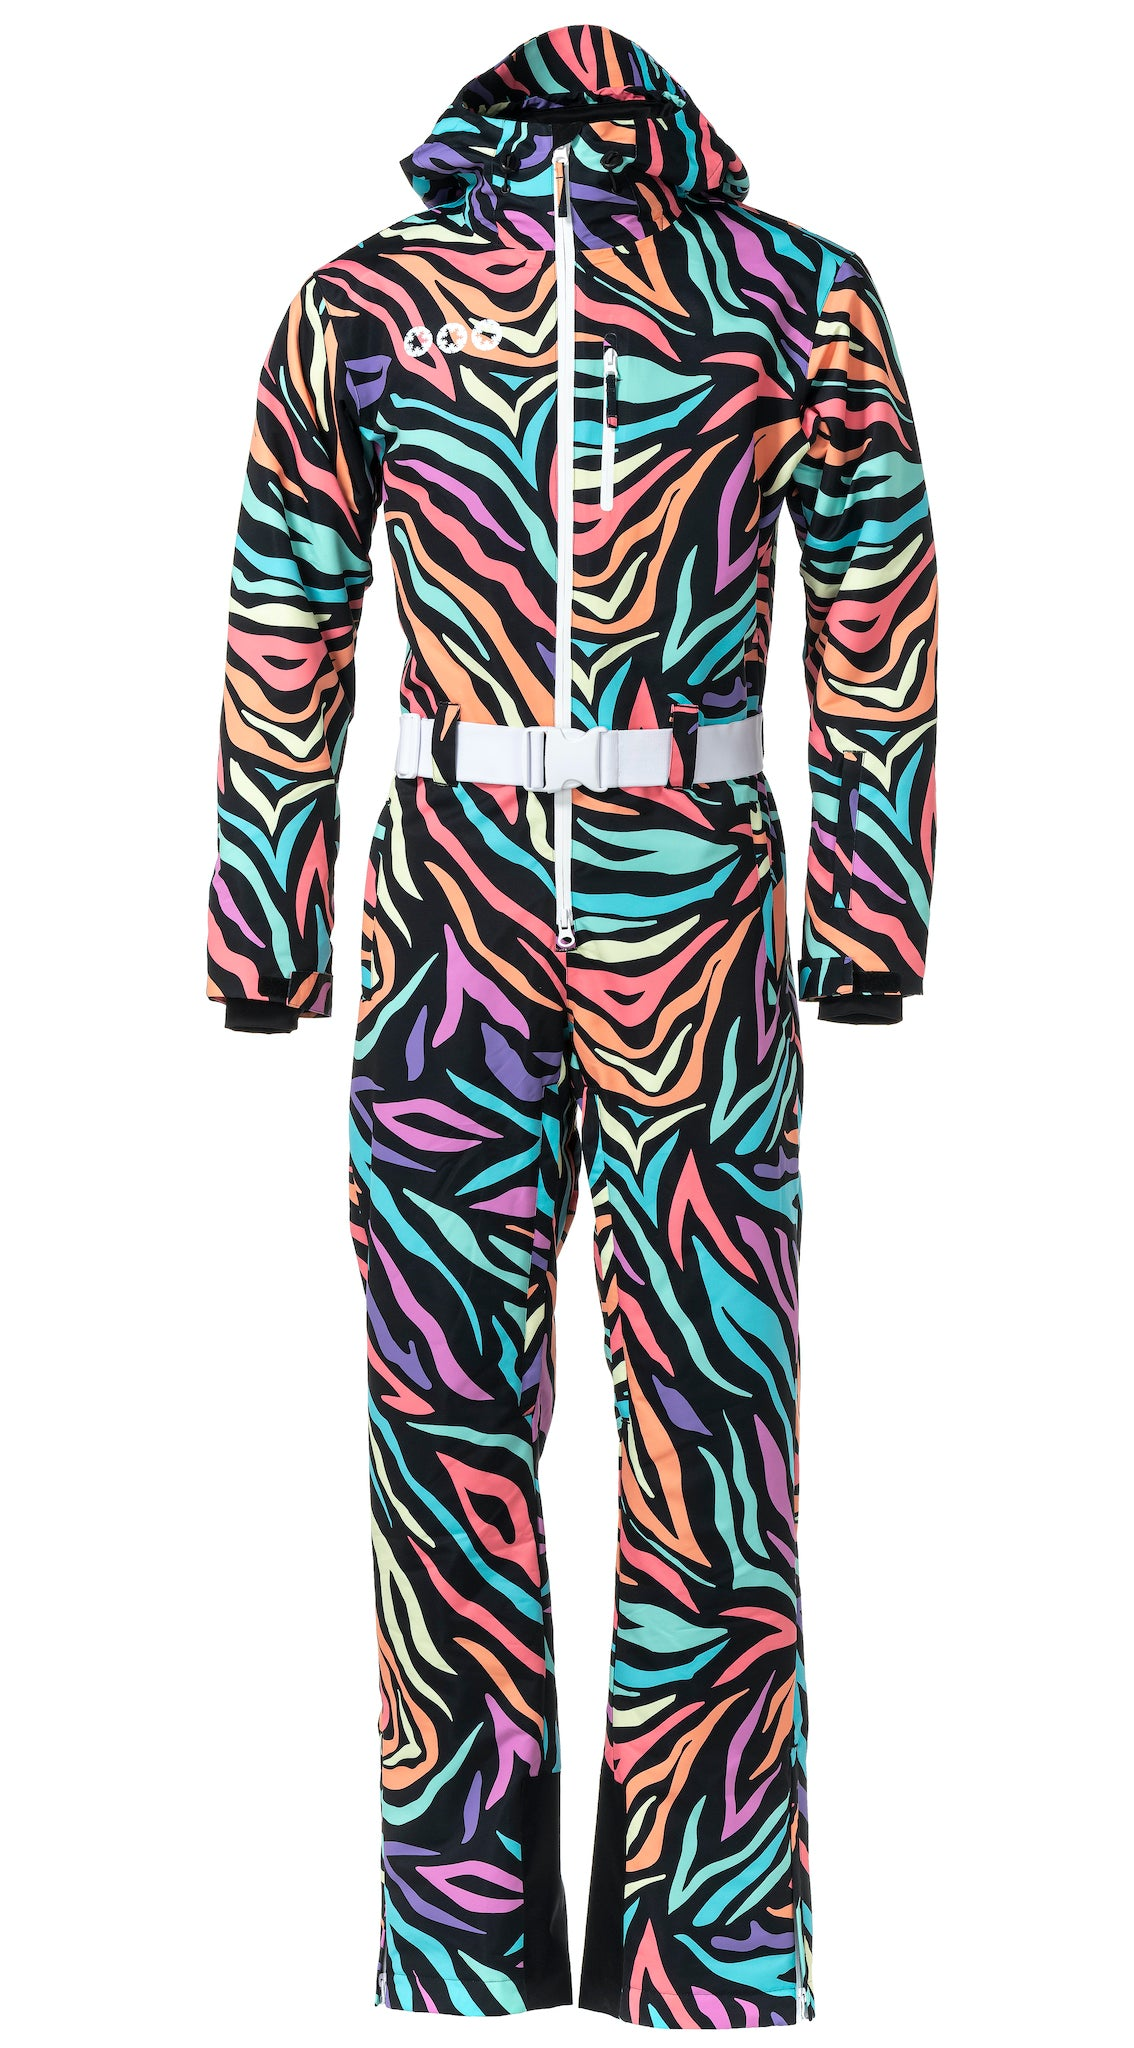 Tony the Tiger | Unisex Ski Suit - Willyfinder